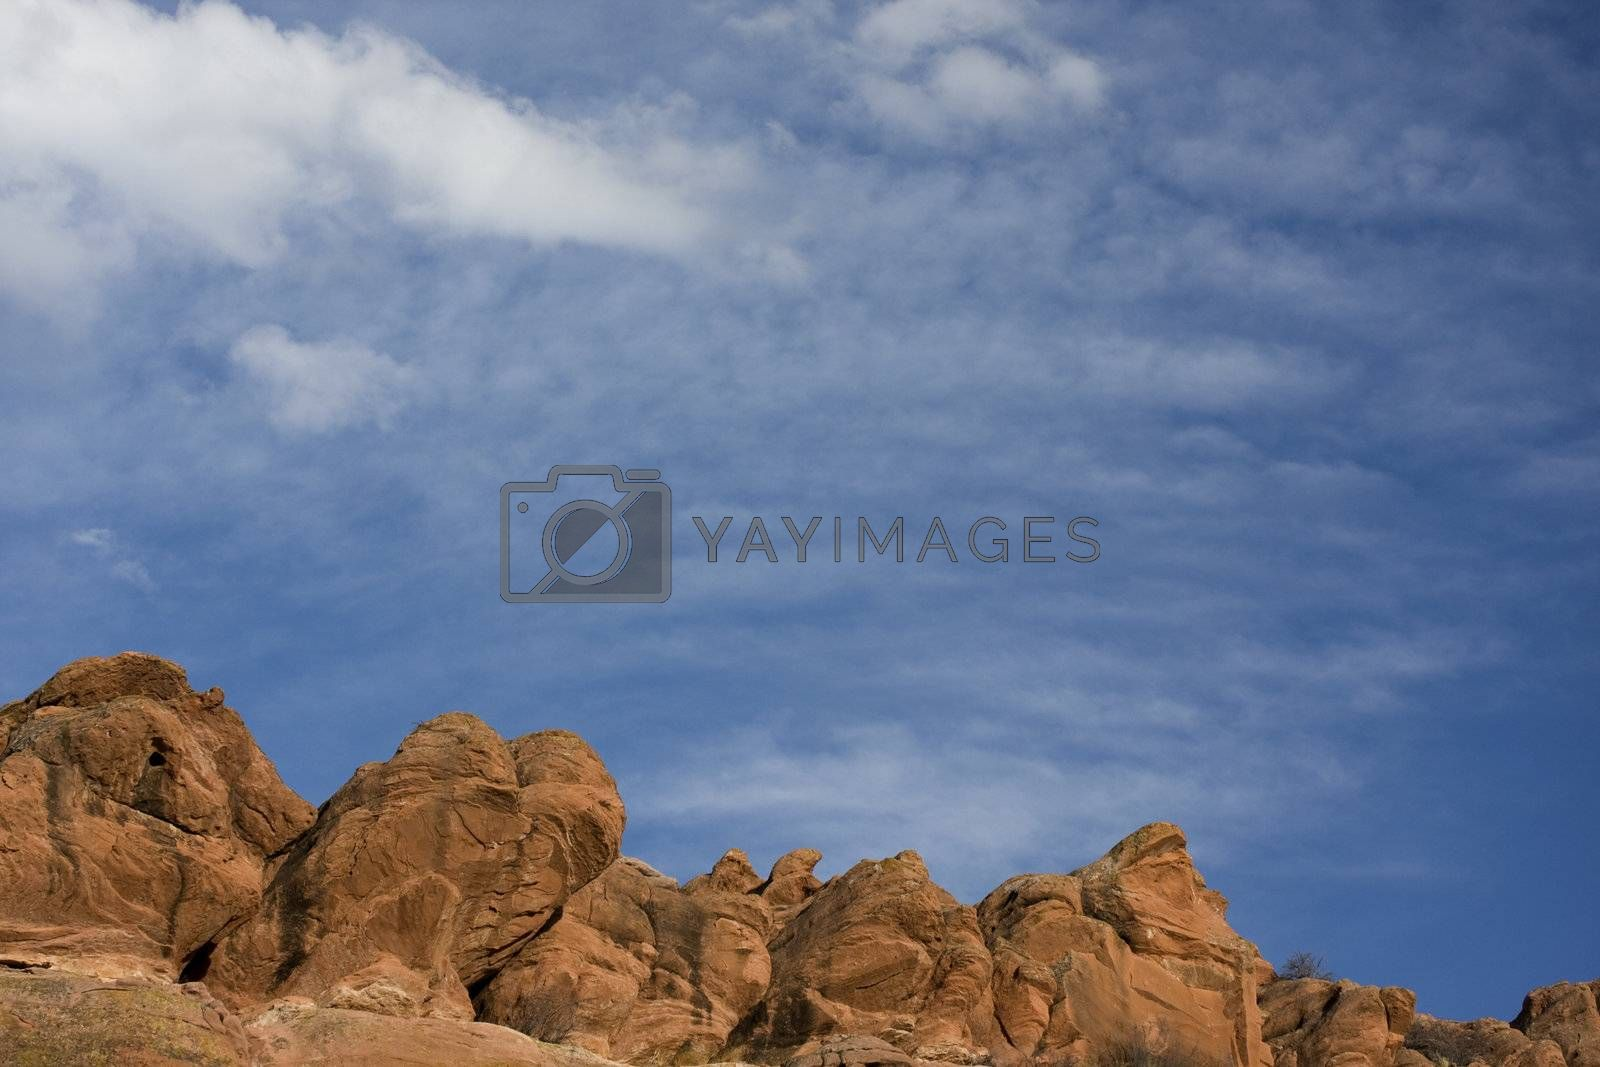 red sandstone rocks, blue sky with delicate white cumulus and cirrocumulus clouds at foothills of Rocky Mountains in Colorado